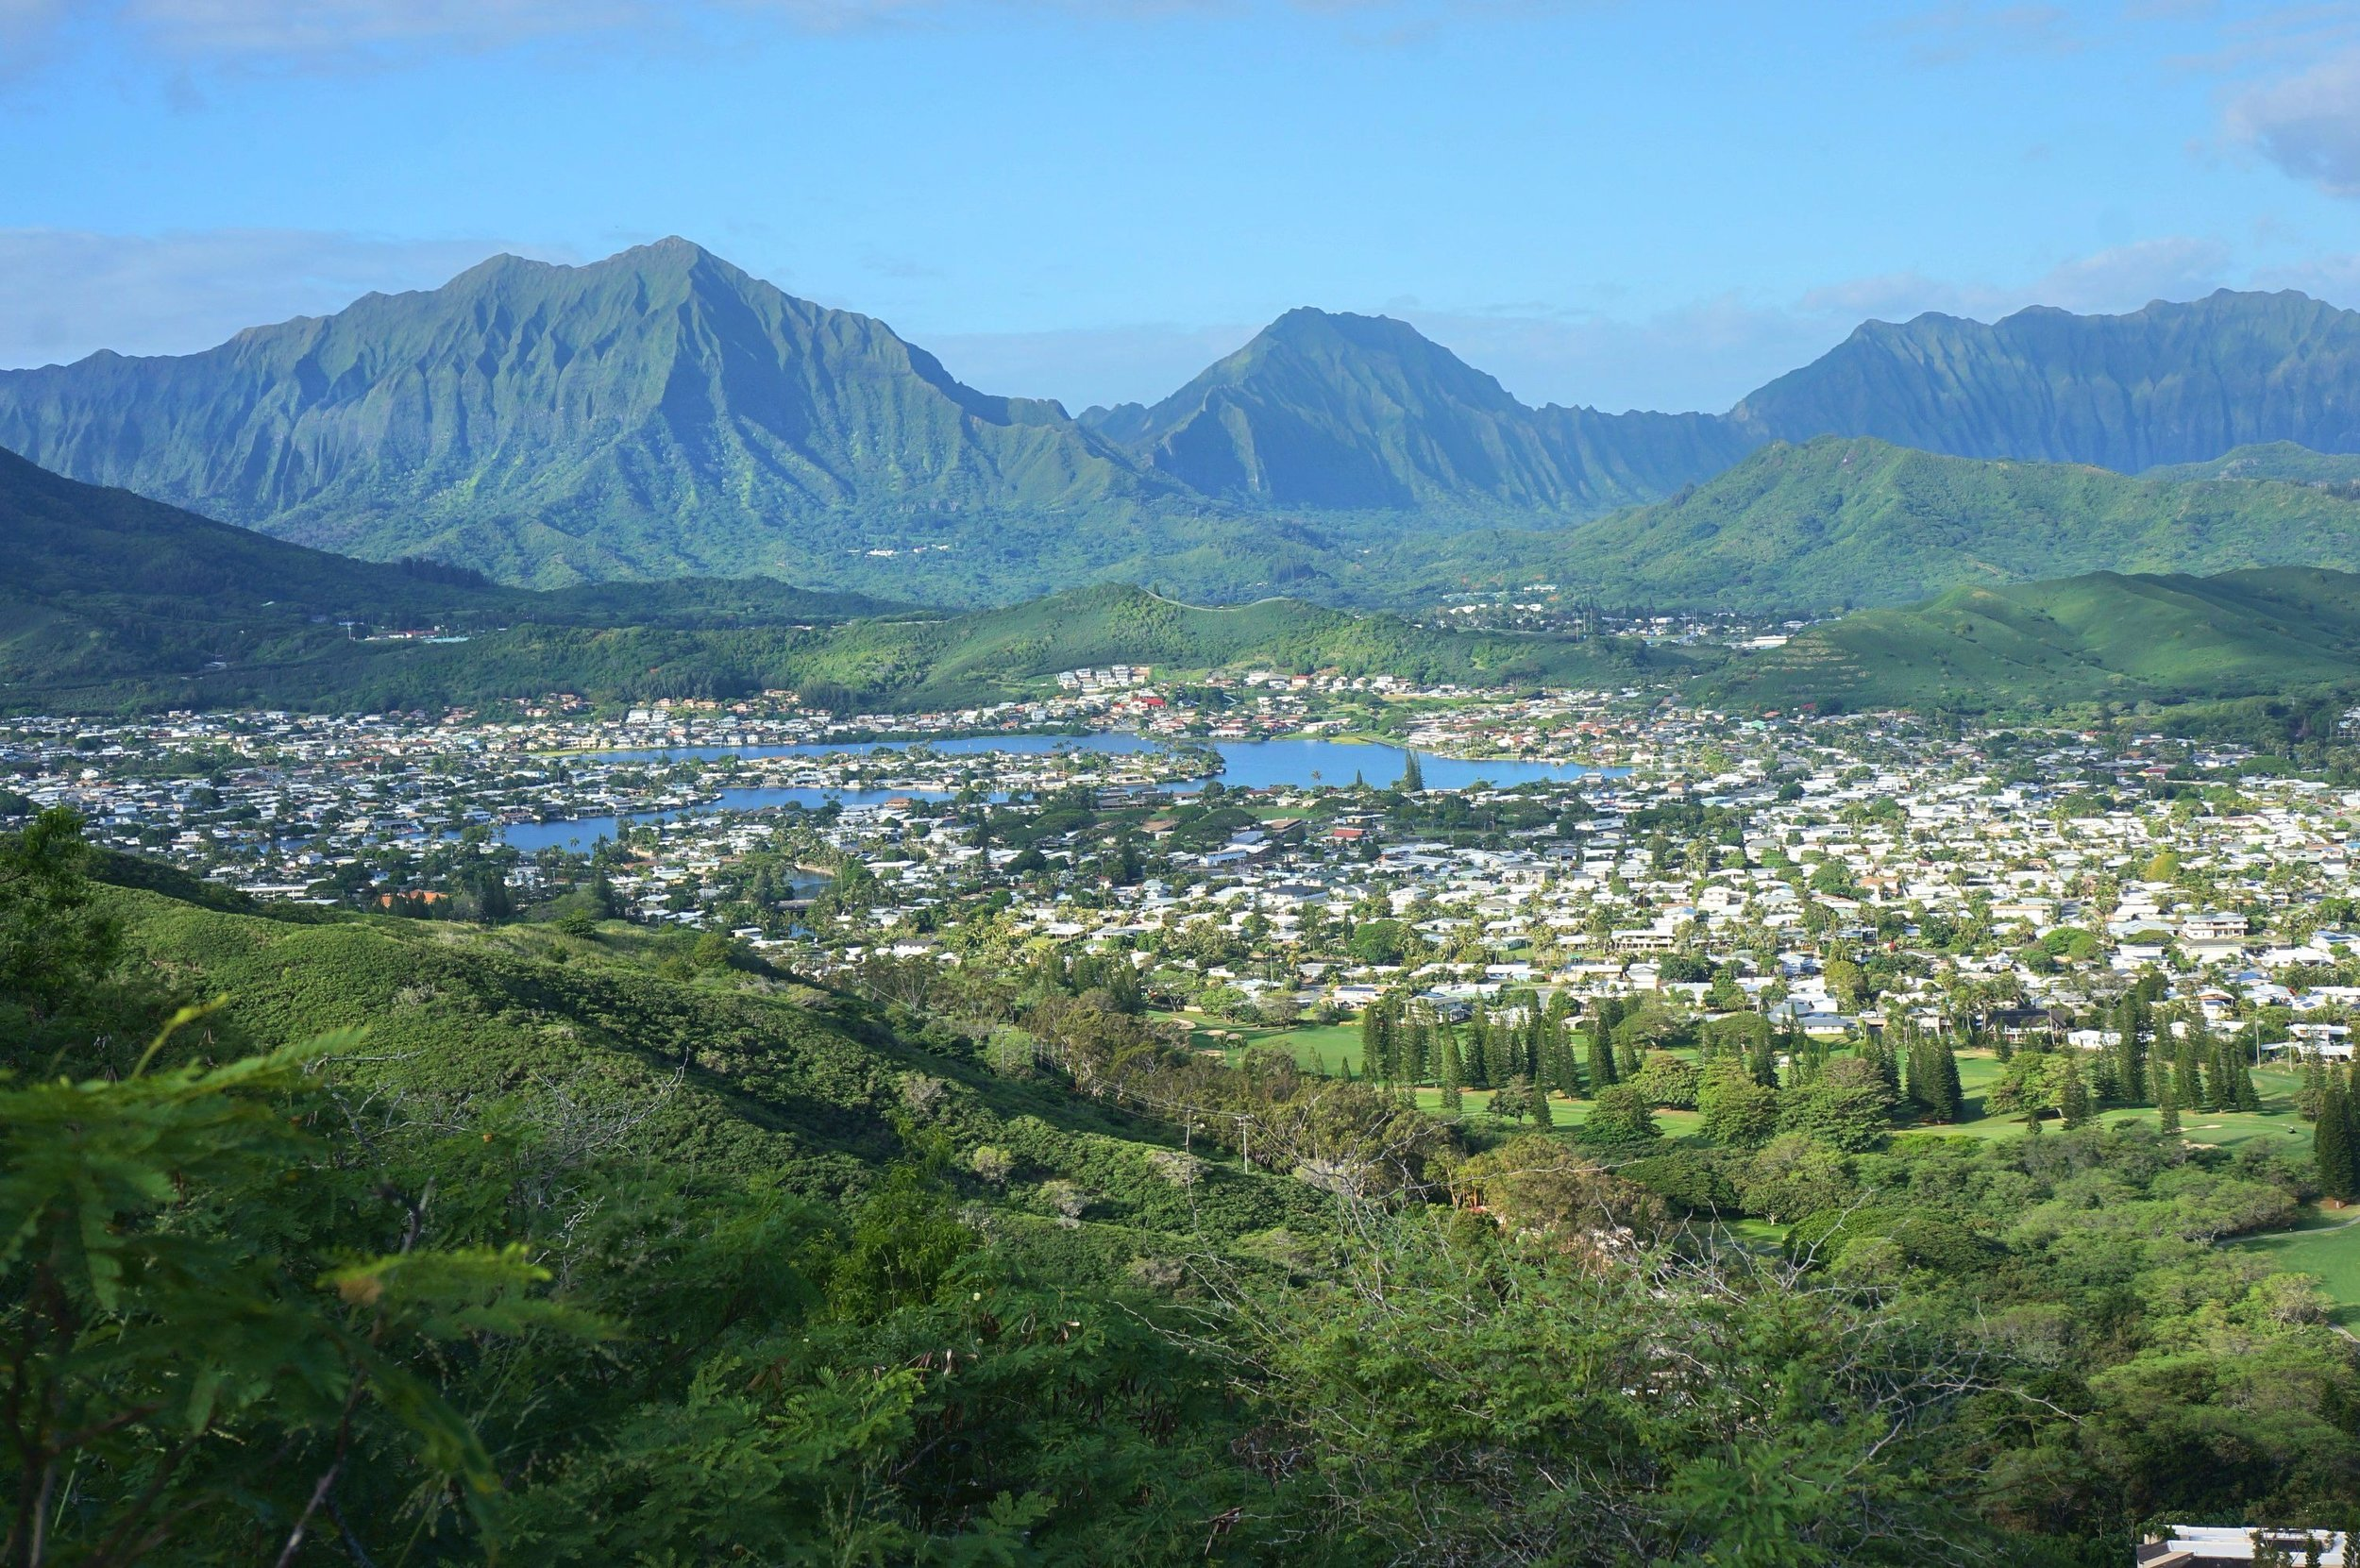 Not a painting, nor is it fake. This is our backdrop in Oahu!